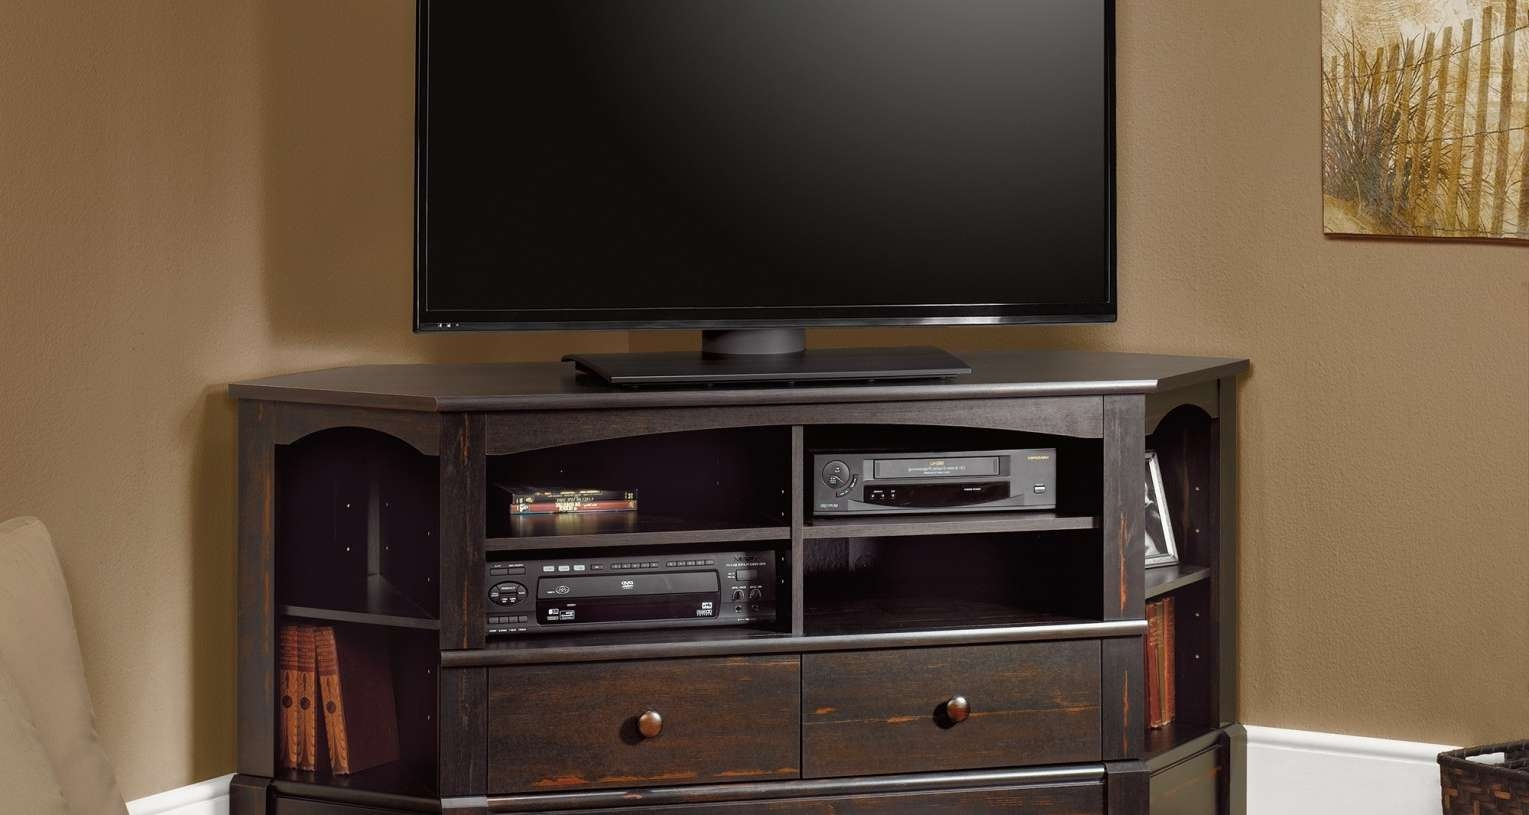 Cabinet : Black Mahogany Wood Corner Tv Stand With Storage Shelves Inside Mahogany Tv Stands (View 3 of 15)